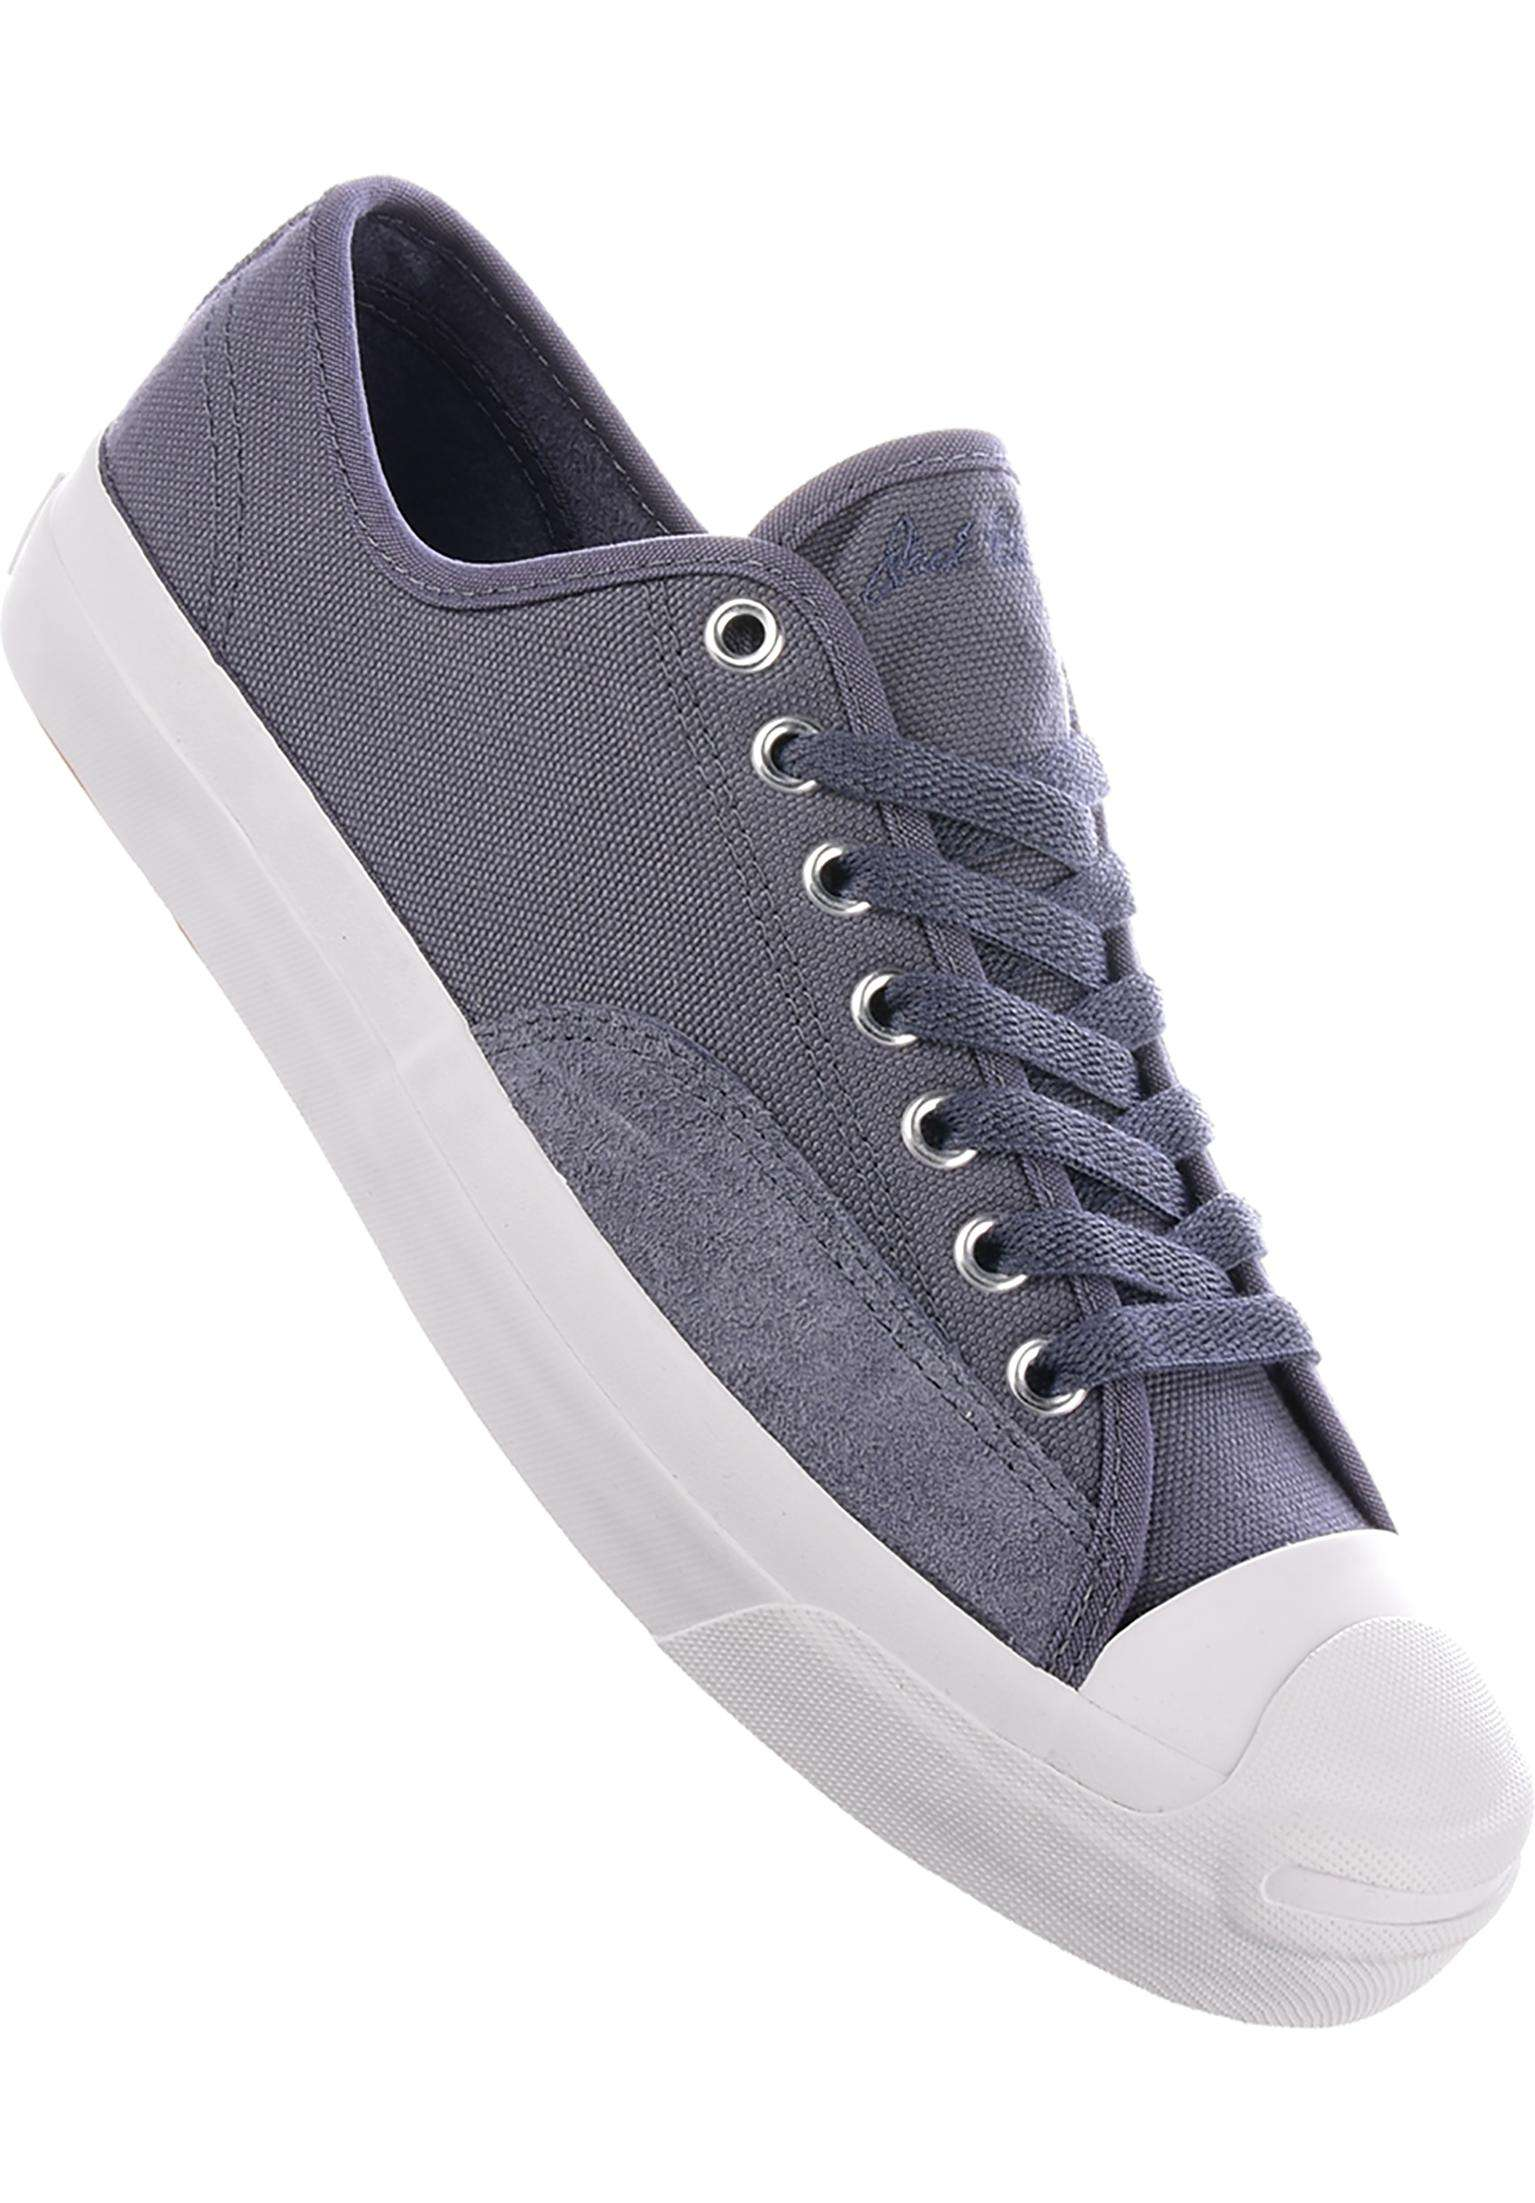 more photos 9102b 01057 Jack Purcell Pro Ox Converse CONS All Shoes in lightcarbon for Men   Titus